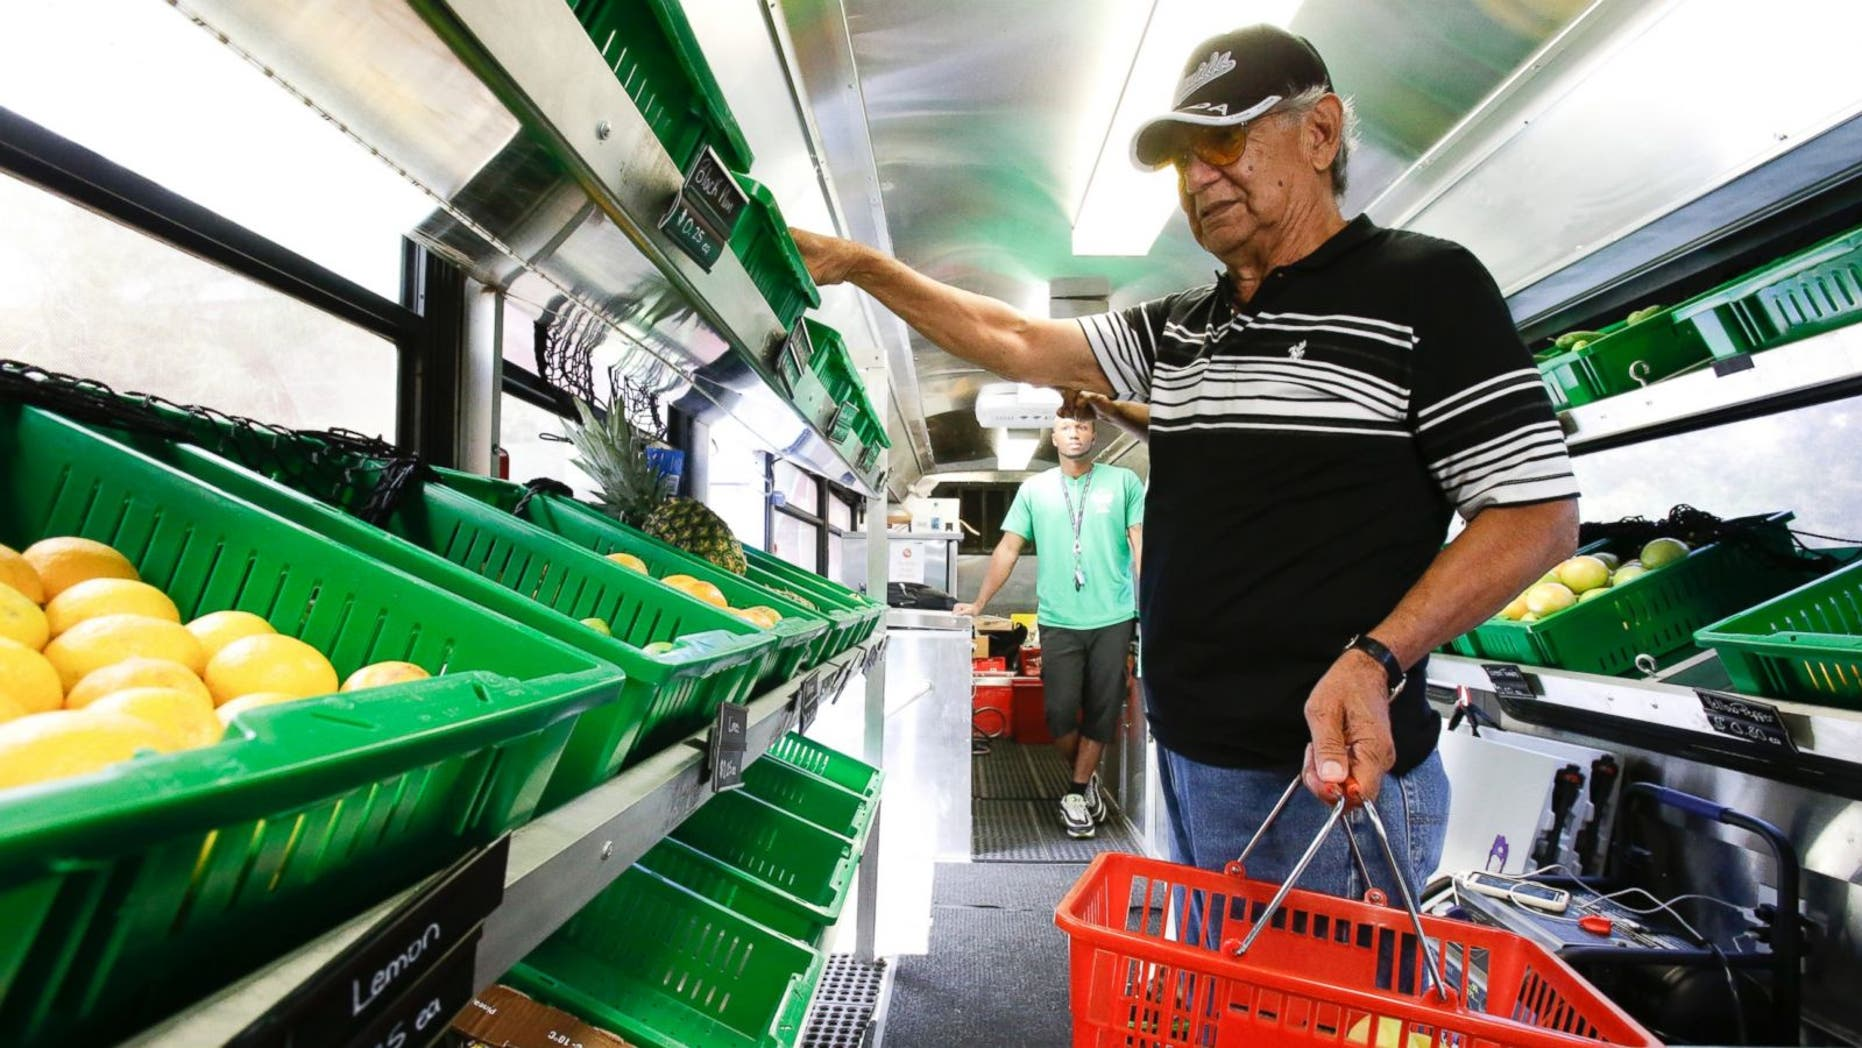 Pablo Salazar shops for fruits and vegetables in the Fresh Stop bus, a mobile market, at the Taft Community Center, in Orlando, Fla. The Fresh Stop brings fresh fruits and vegetables to communities with no supermarkets.